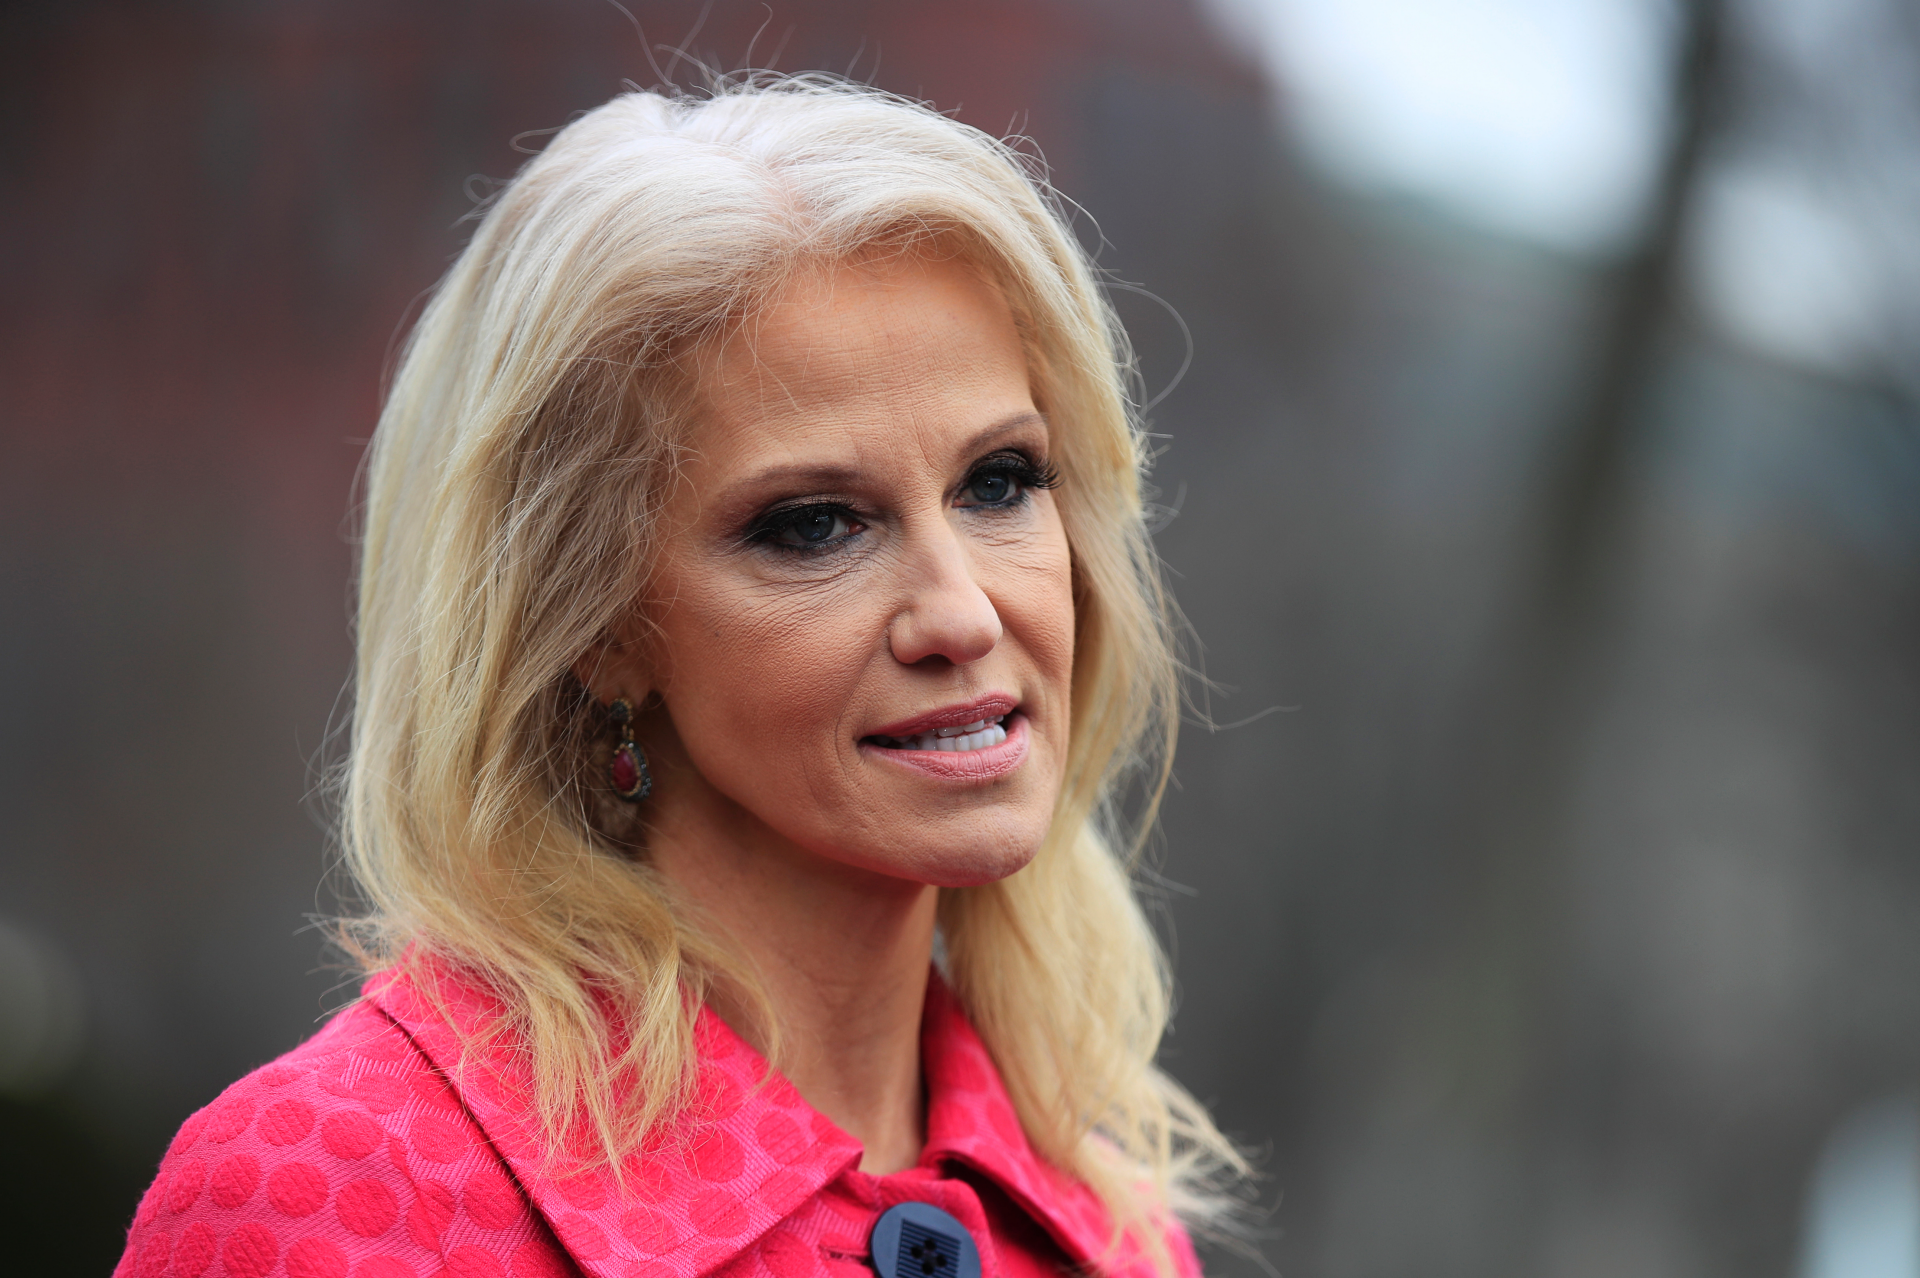 Westlake Legal Group ContentBroker_contentid-1cafaa5b8c1d48edbe6e40aeb2249c4b Kellyanne Conway points to 'Deporter in Chief' Obama in defense of ICE raids Ronn Blitzer fox-news/us/immigration fox-news/topic/fox-news-flash fox-news/entertainment/media fox news fnc/politics fnc article 68711be1-e0d6-5c68-9d5e-768cff42ffb0